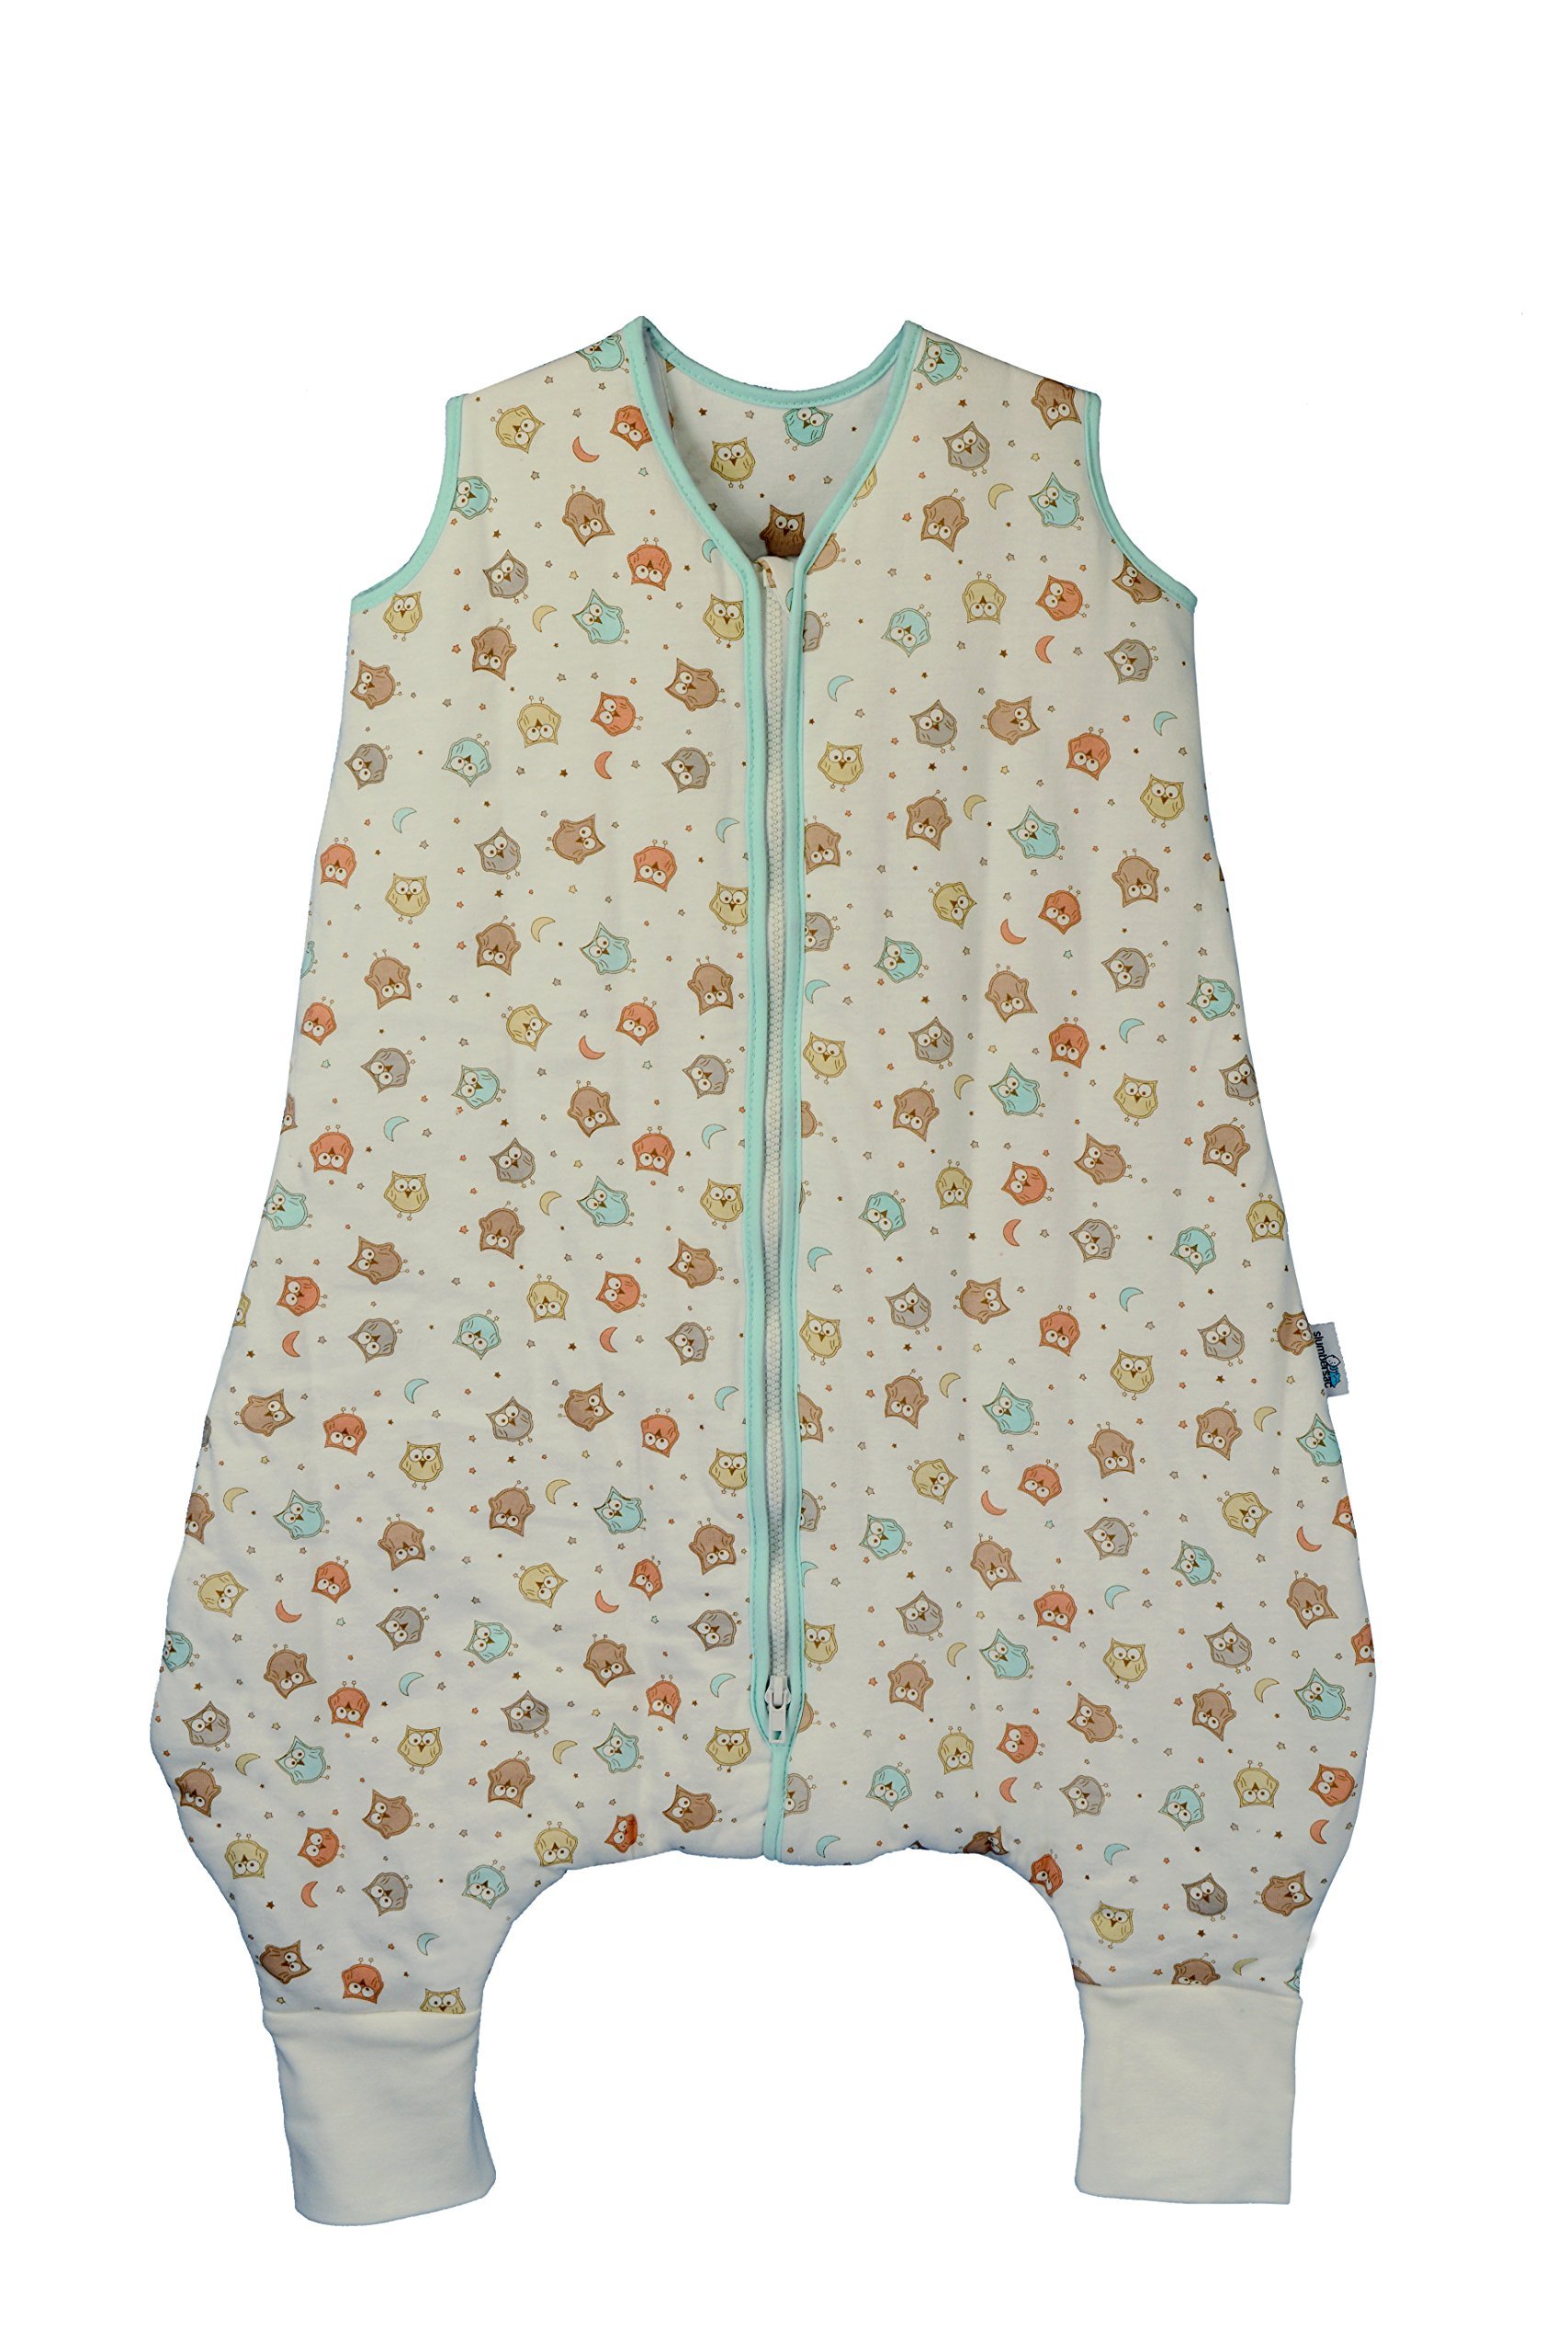 Slumbersafe Summer Sleeping Bag with Feet and Poppers 1.0 Tog Simply Owl 12-18 Months by Slumbersafe